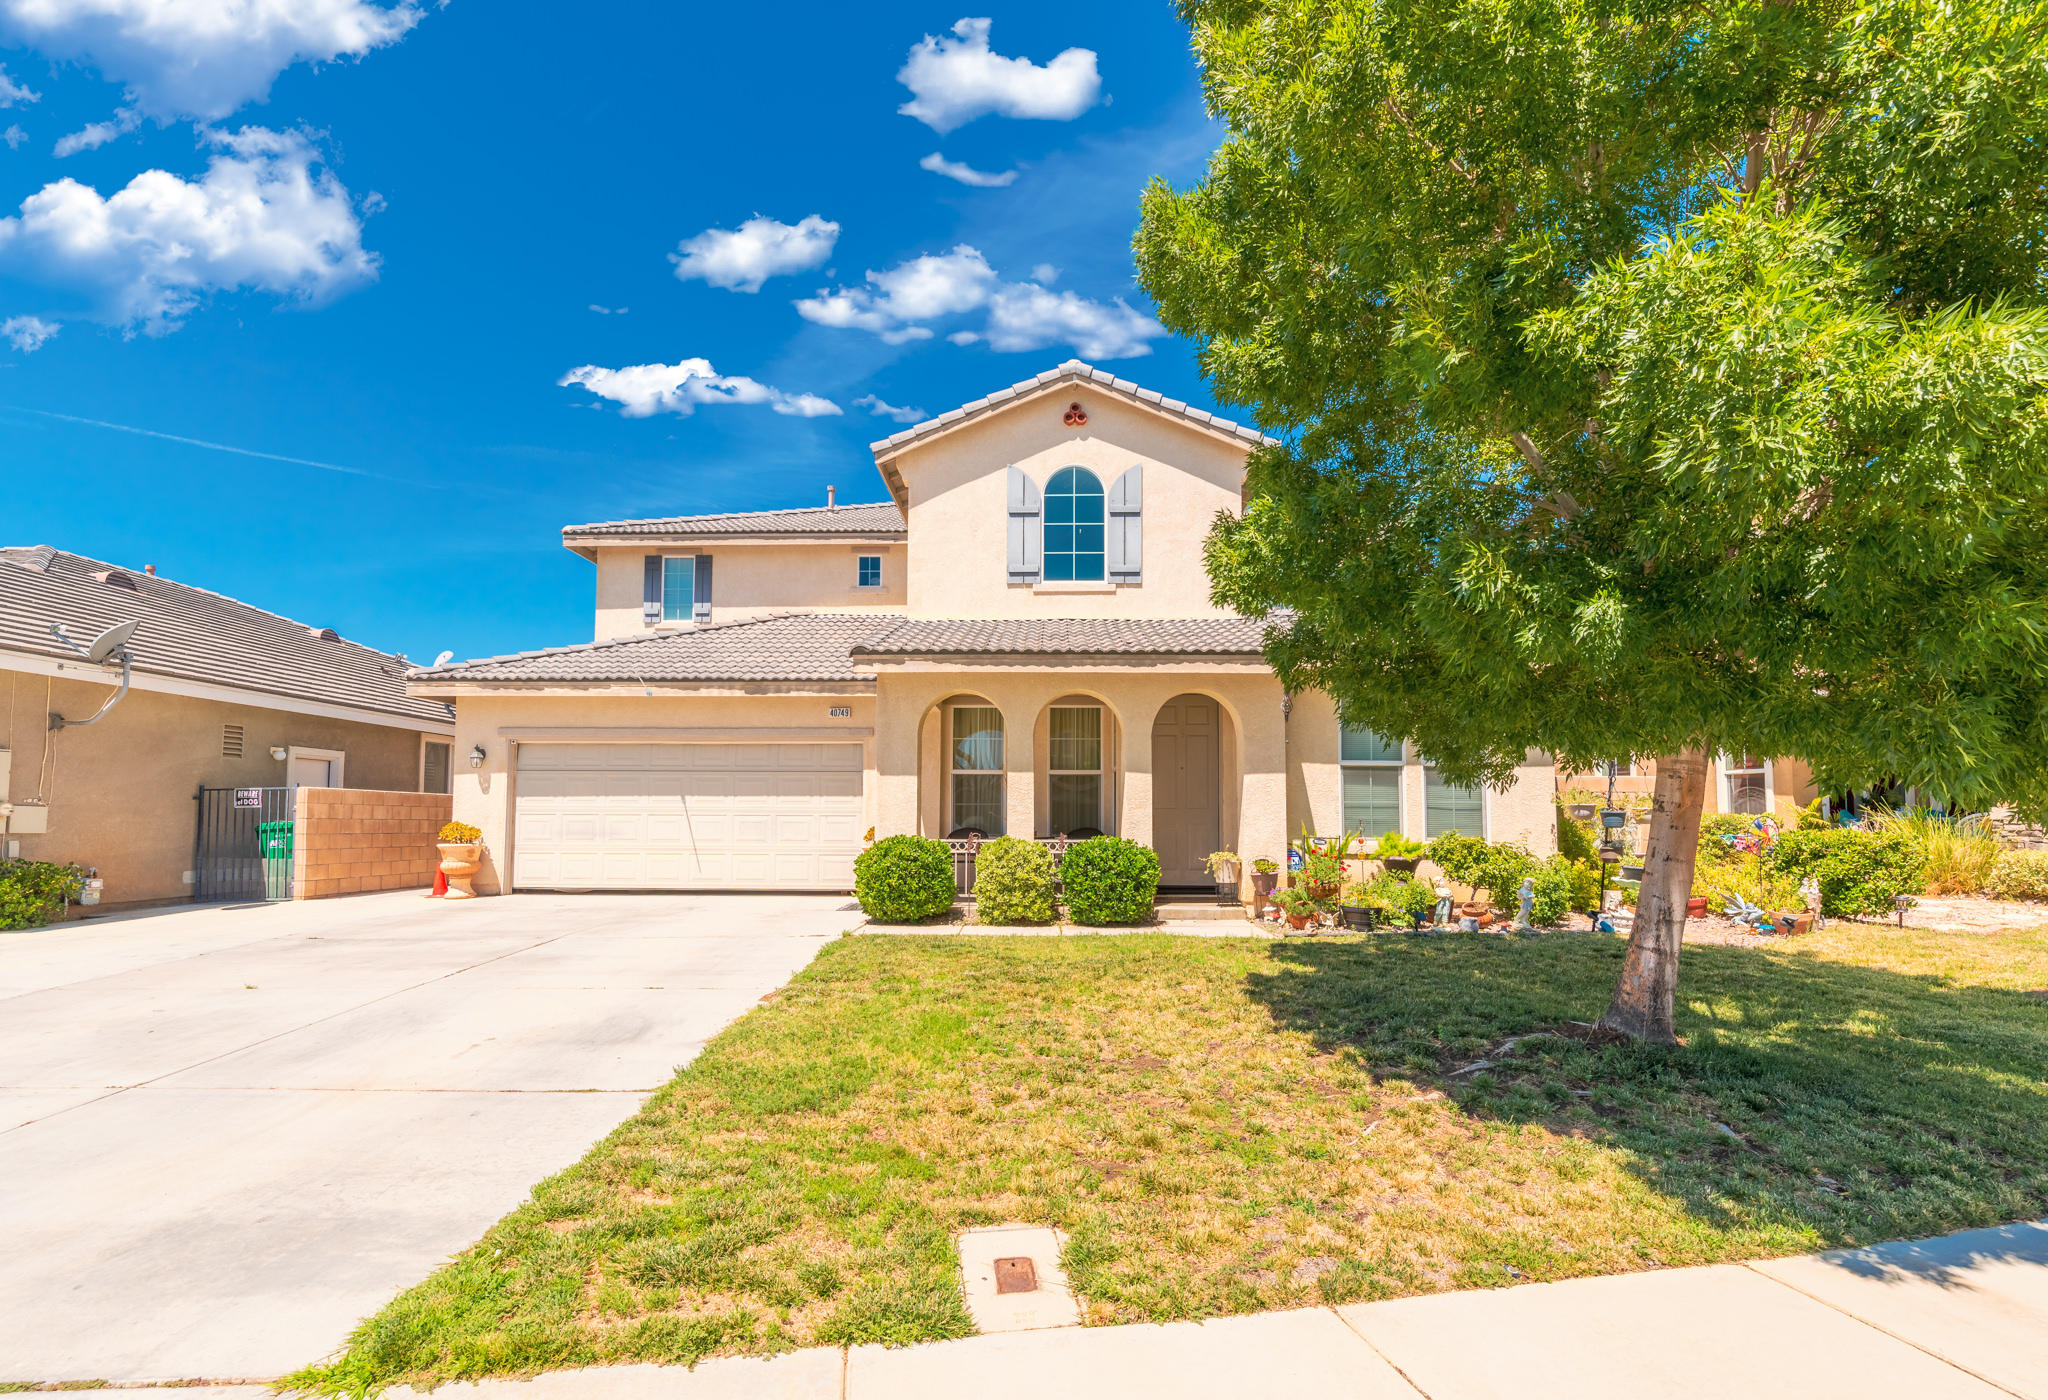 40749 Knollwood Court, Palmdale CA, 93551